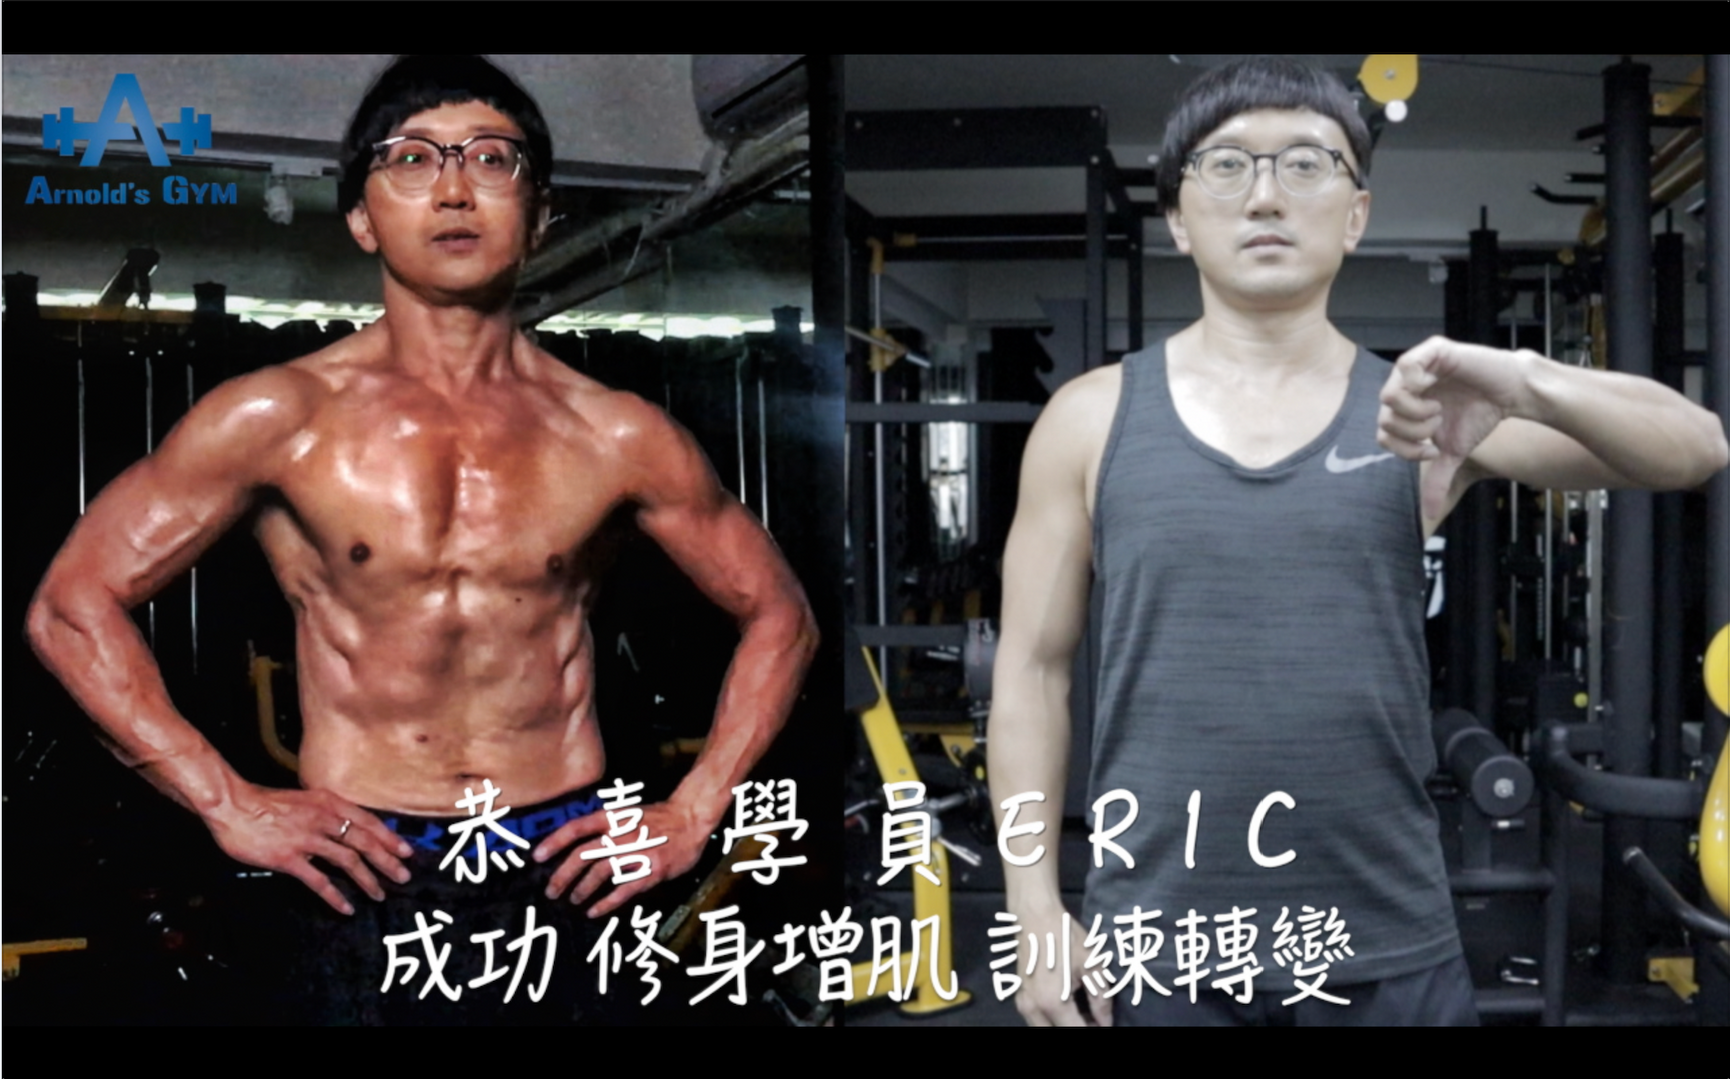 Arnold's Gym ERIC.png